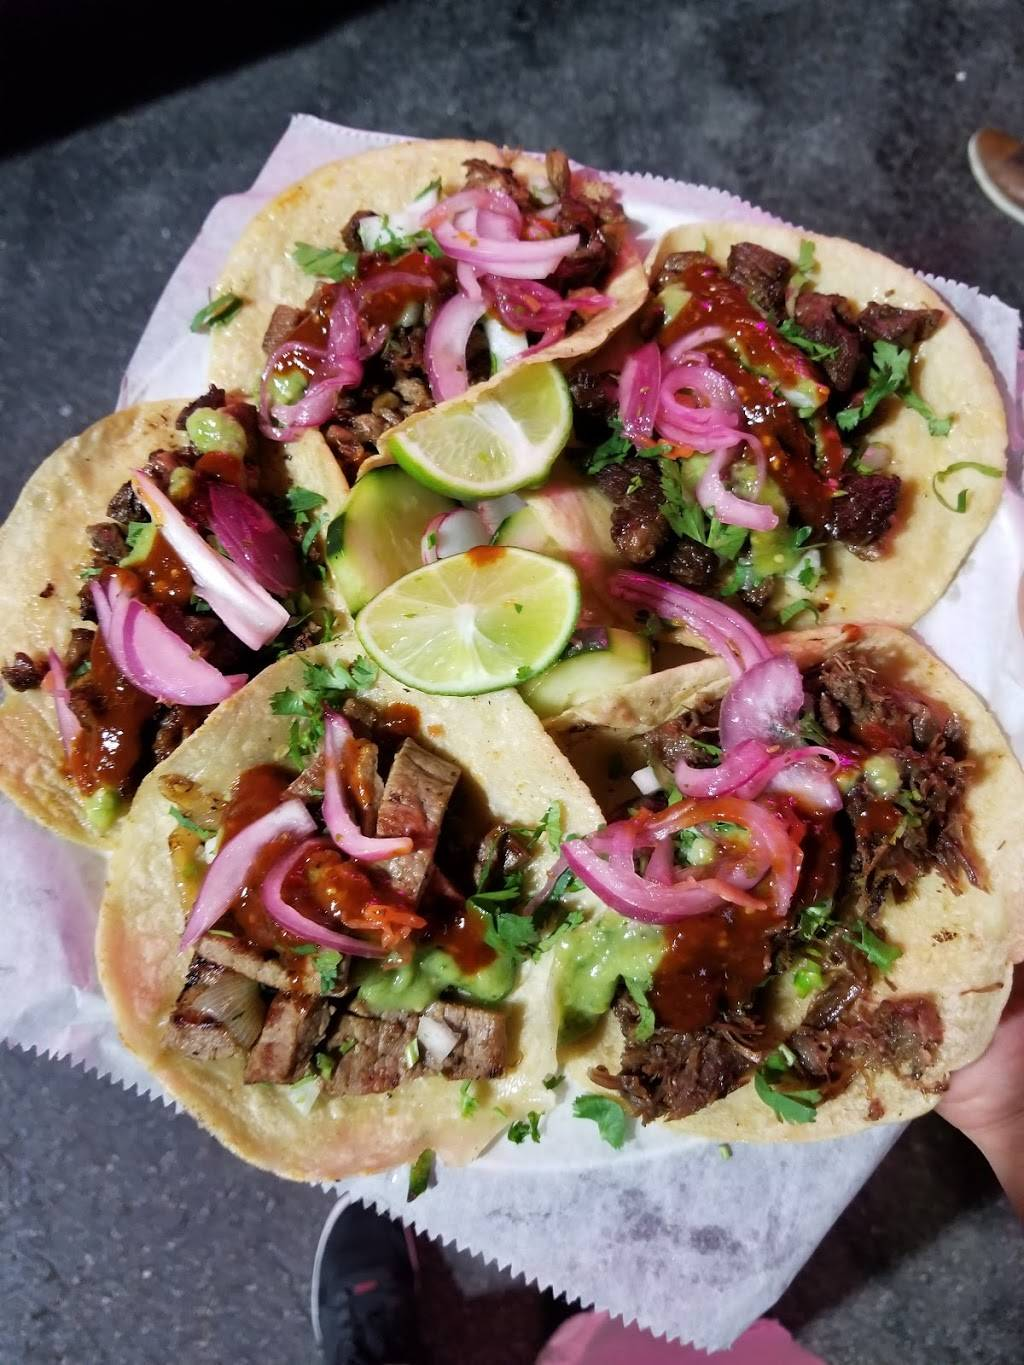 Gym Tacos | restaurant | 220 E Six Forks Rd, Raleigh, NC 27609, USA